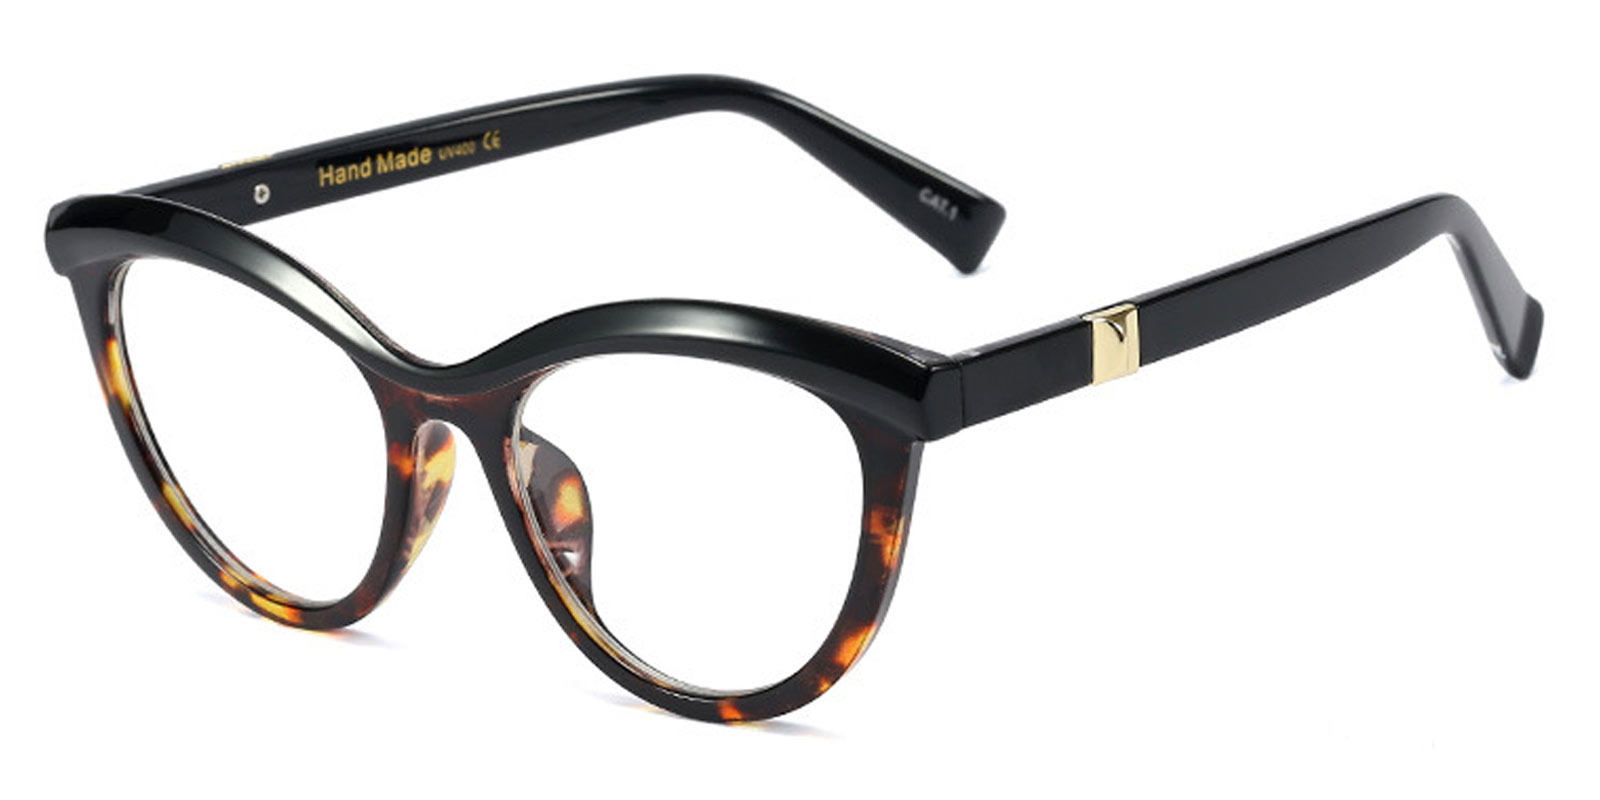 Margaux-Cat eye glasses for women : five color options